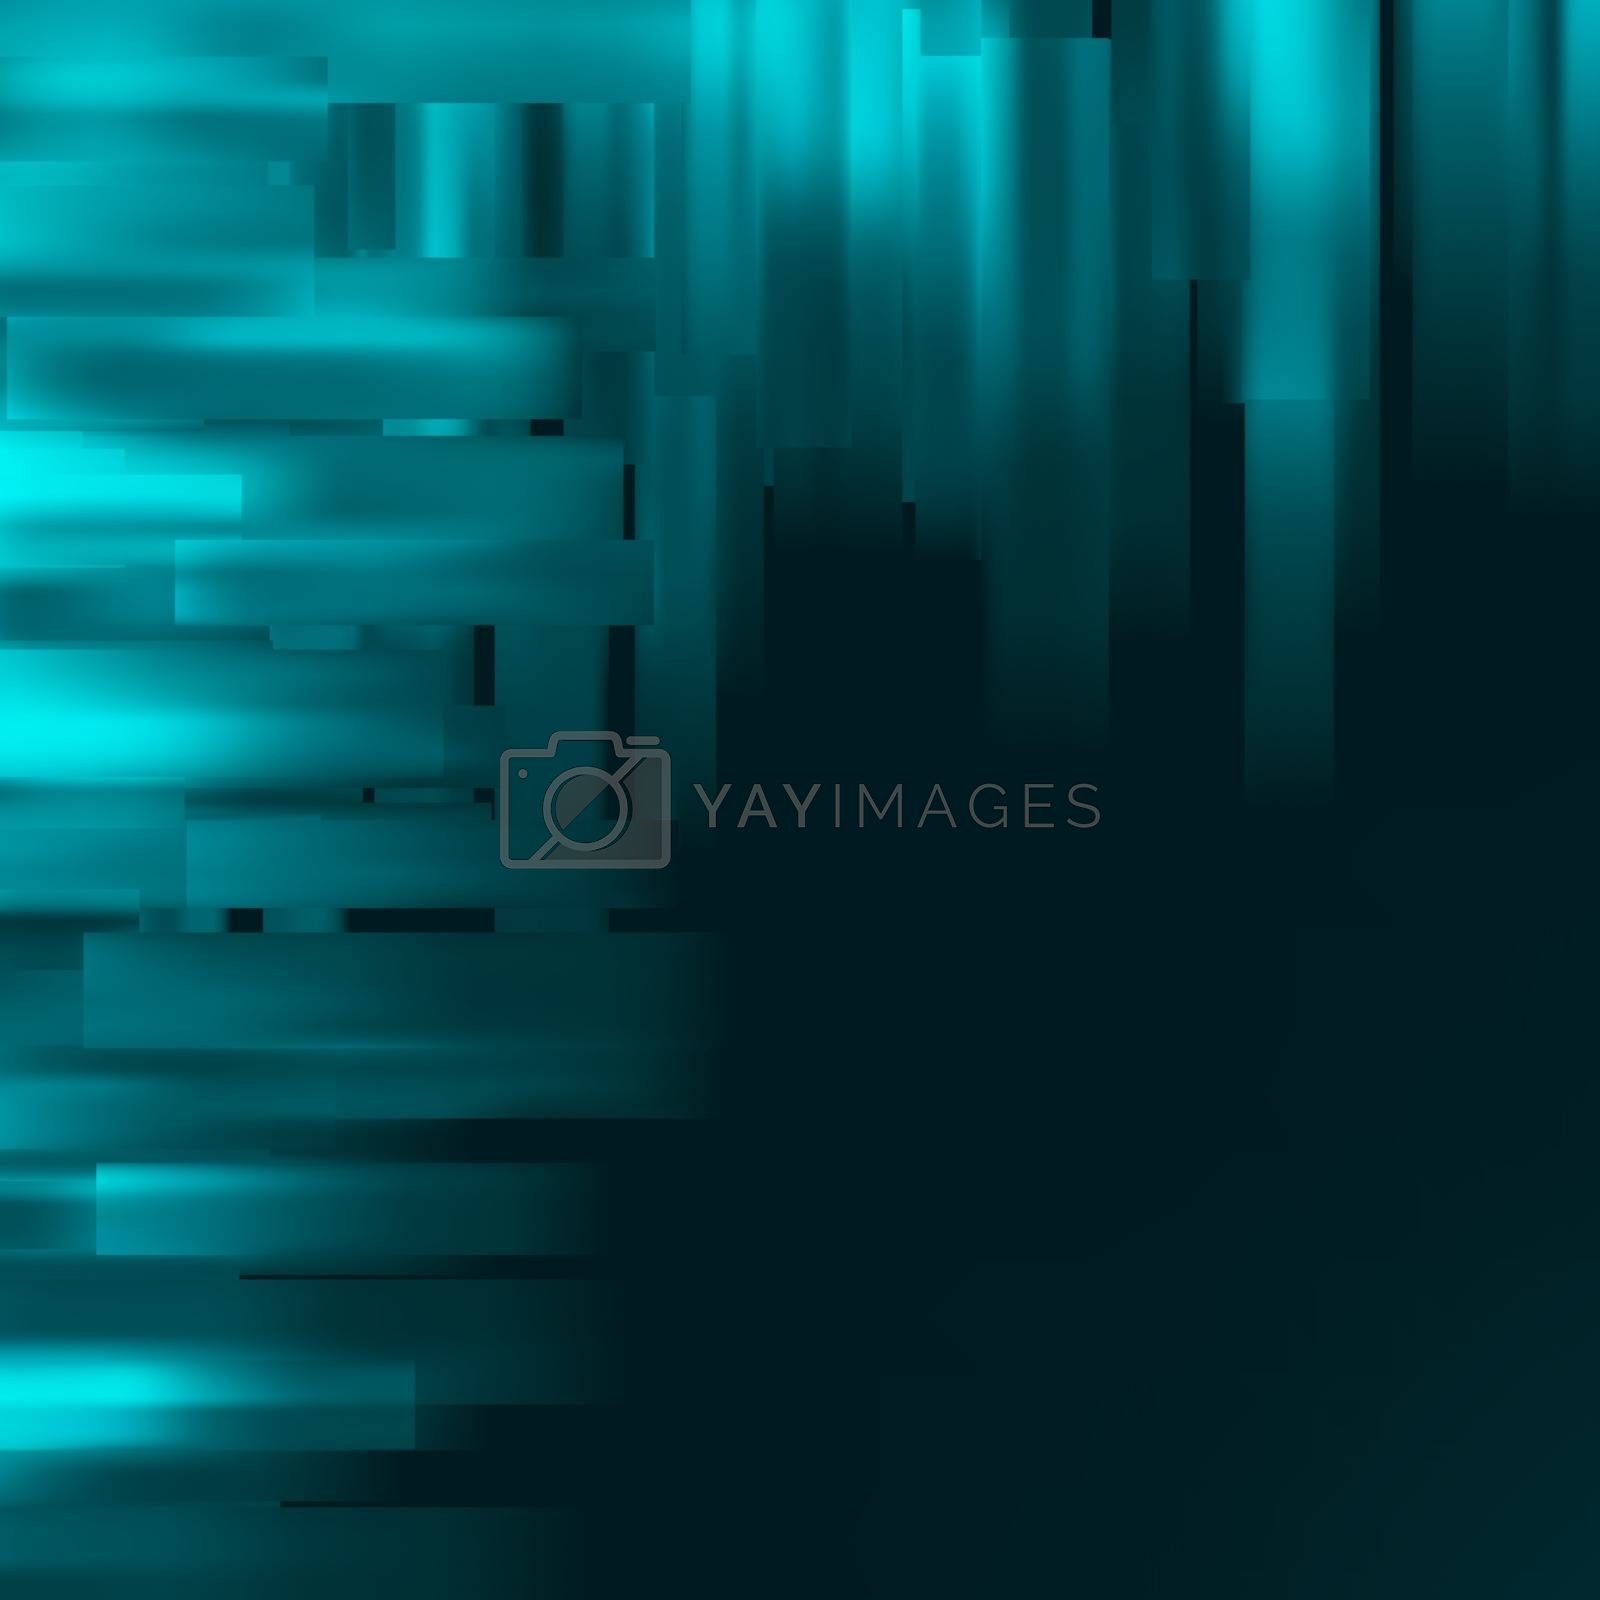 Abstract blue background. EPS 8 vector file included